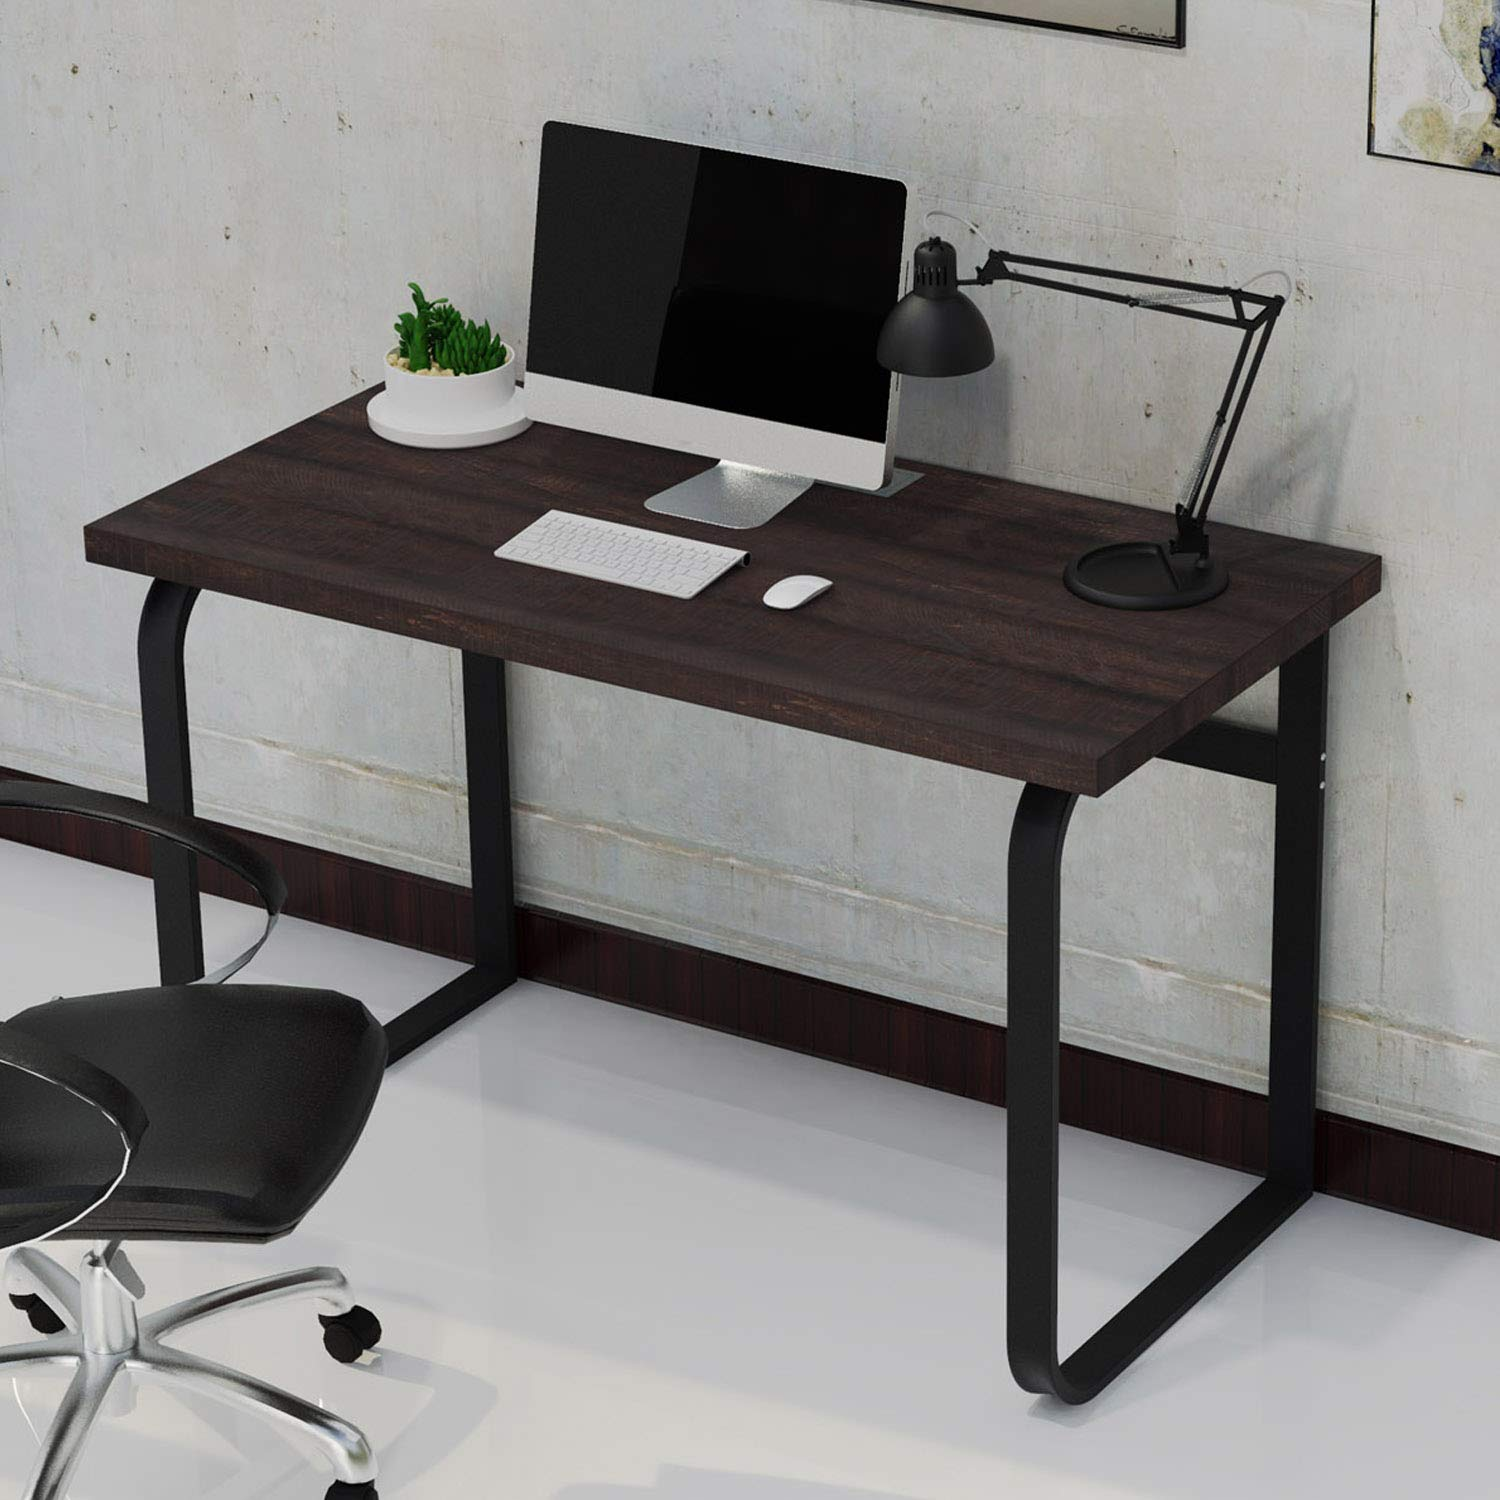 IRONCK Industrial Computer Desk 47 , Wood and Metal Gaming Desk, Simple Writing Study Table Workstation for Home Office, Espresso